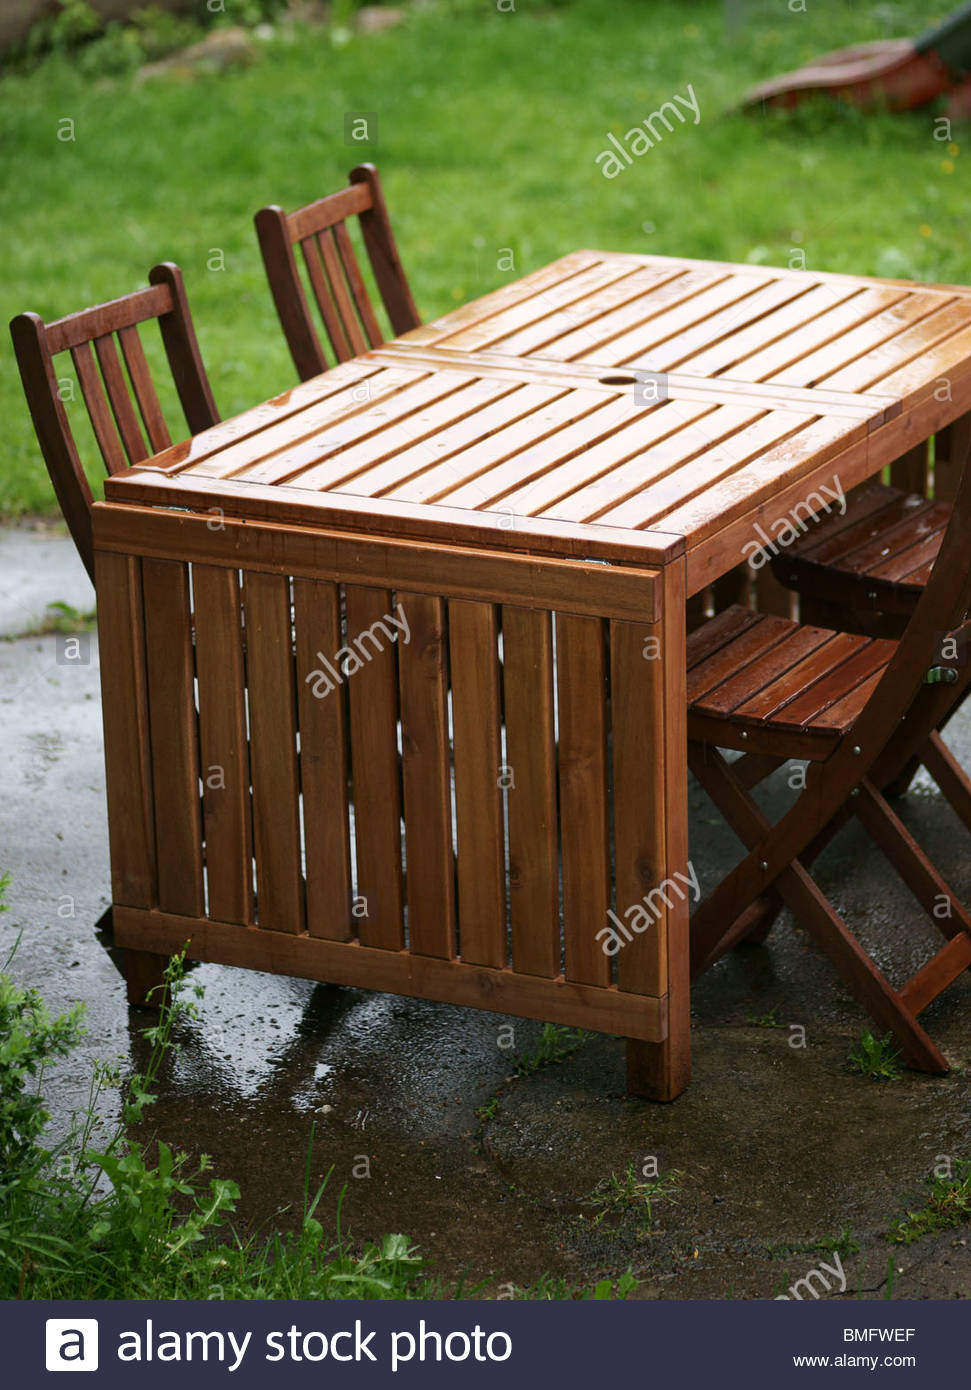 Wooden Garden Furniture Close Up Stock Photo - Alamy